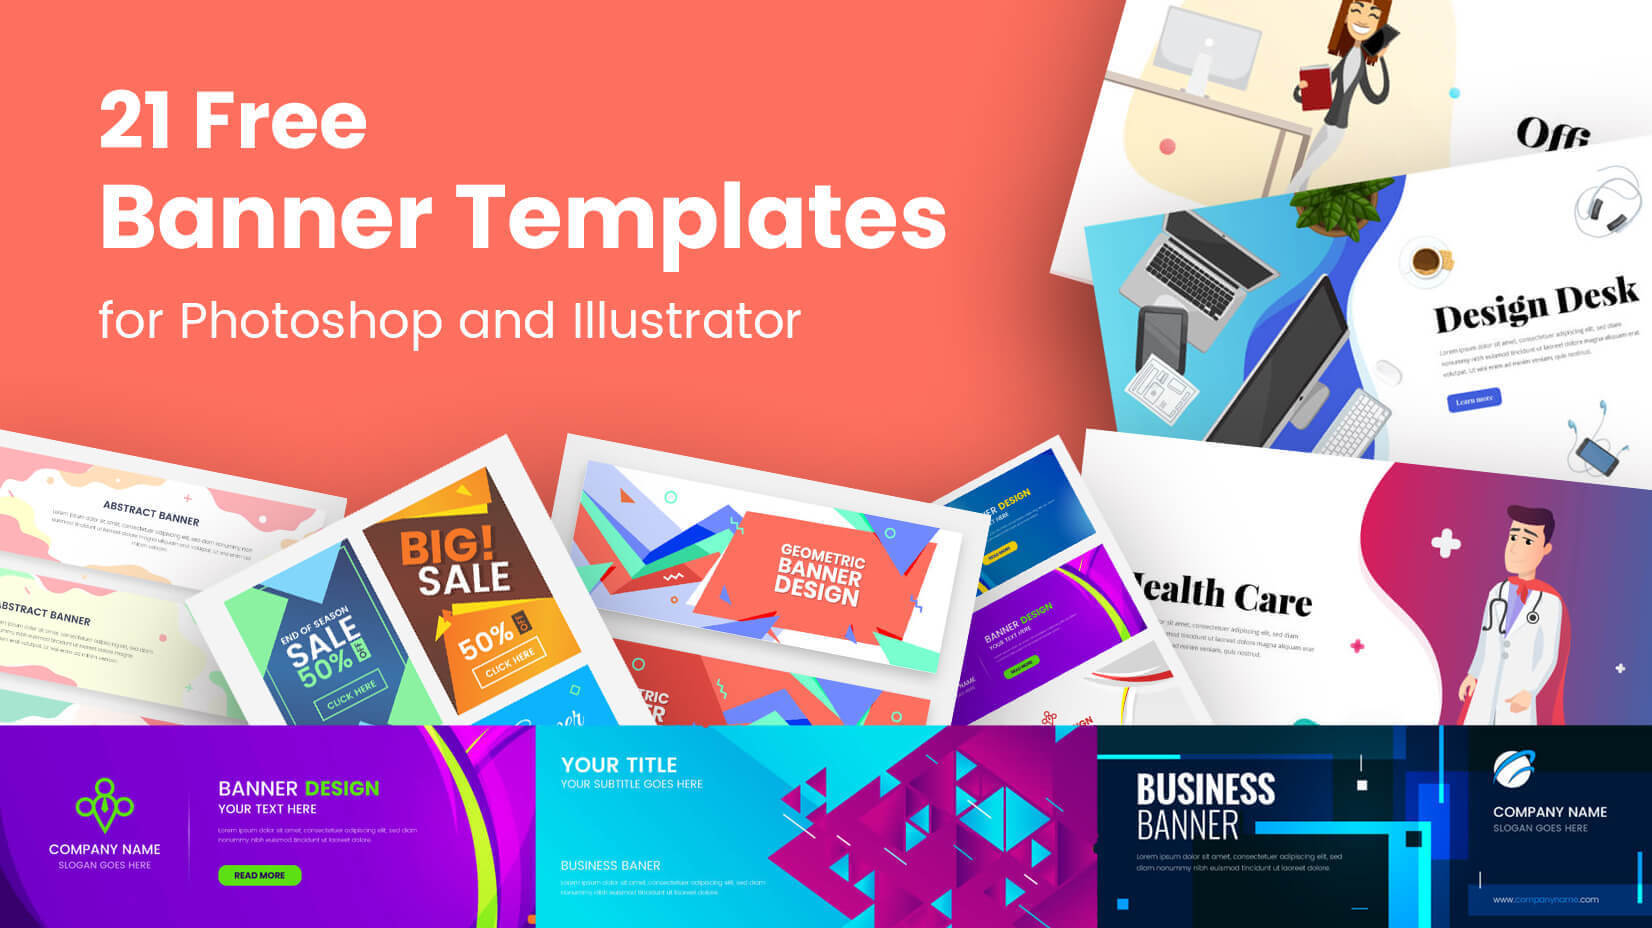 21 Free Banner Templates For Photoshop And Illustrator Regarding Banner Template For Photoshop